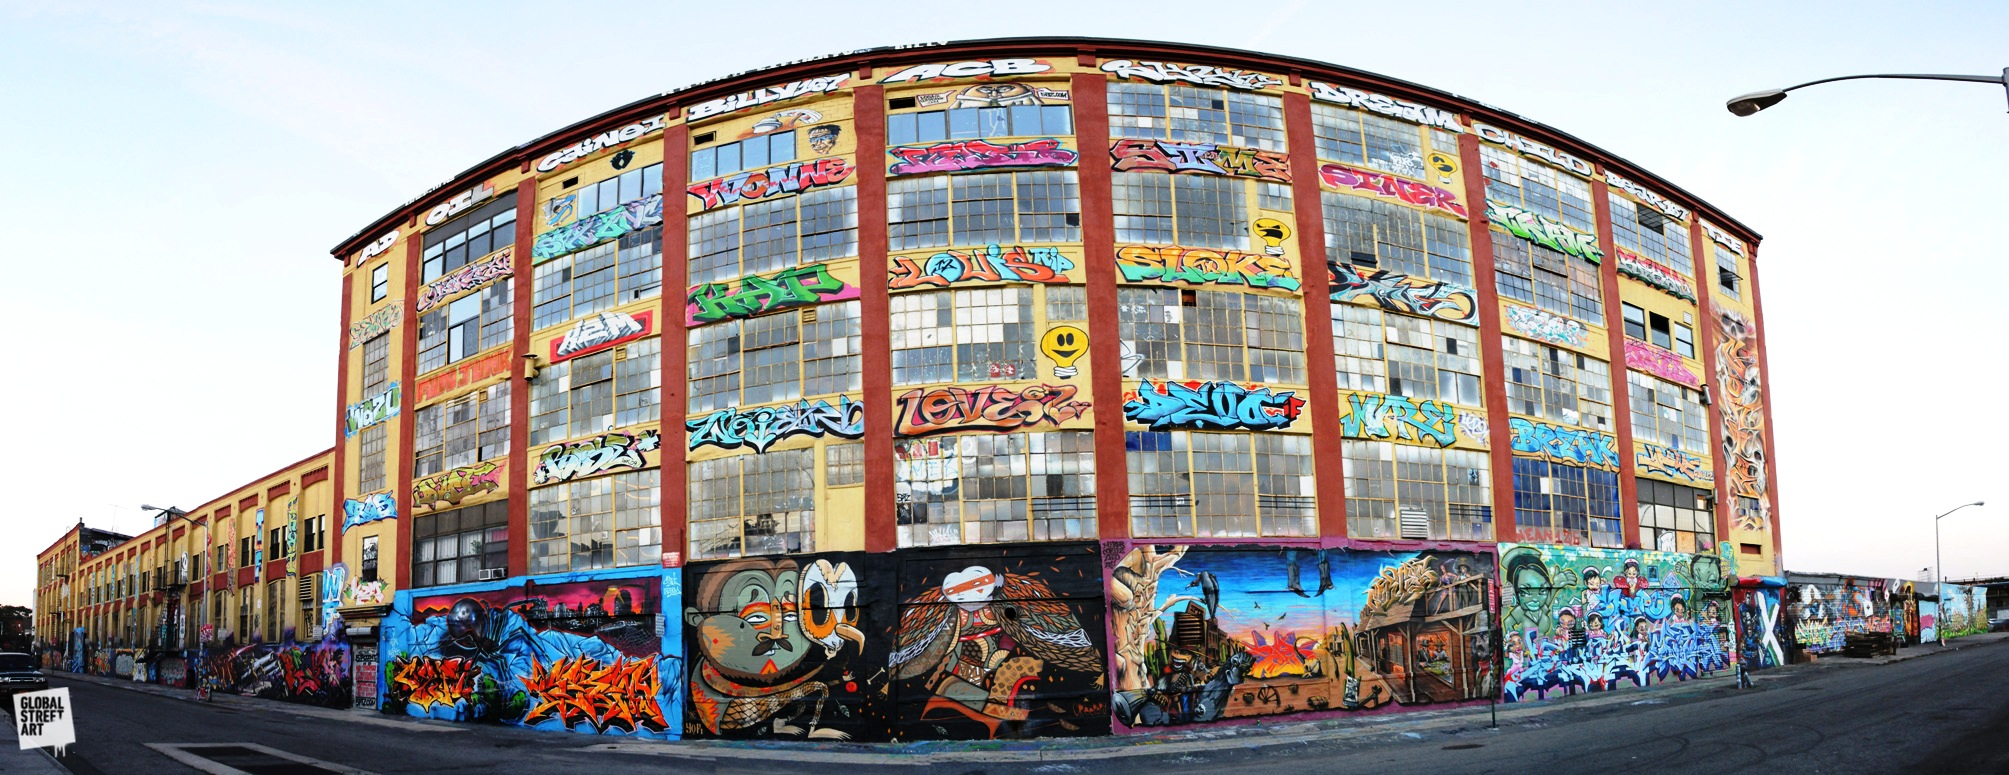 As of August 2014, 5 Pointz was in the process of being torn down and by November 2014 the building had been fully demolished, to be replaced by a condominium complex.